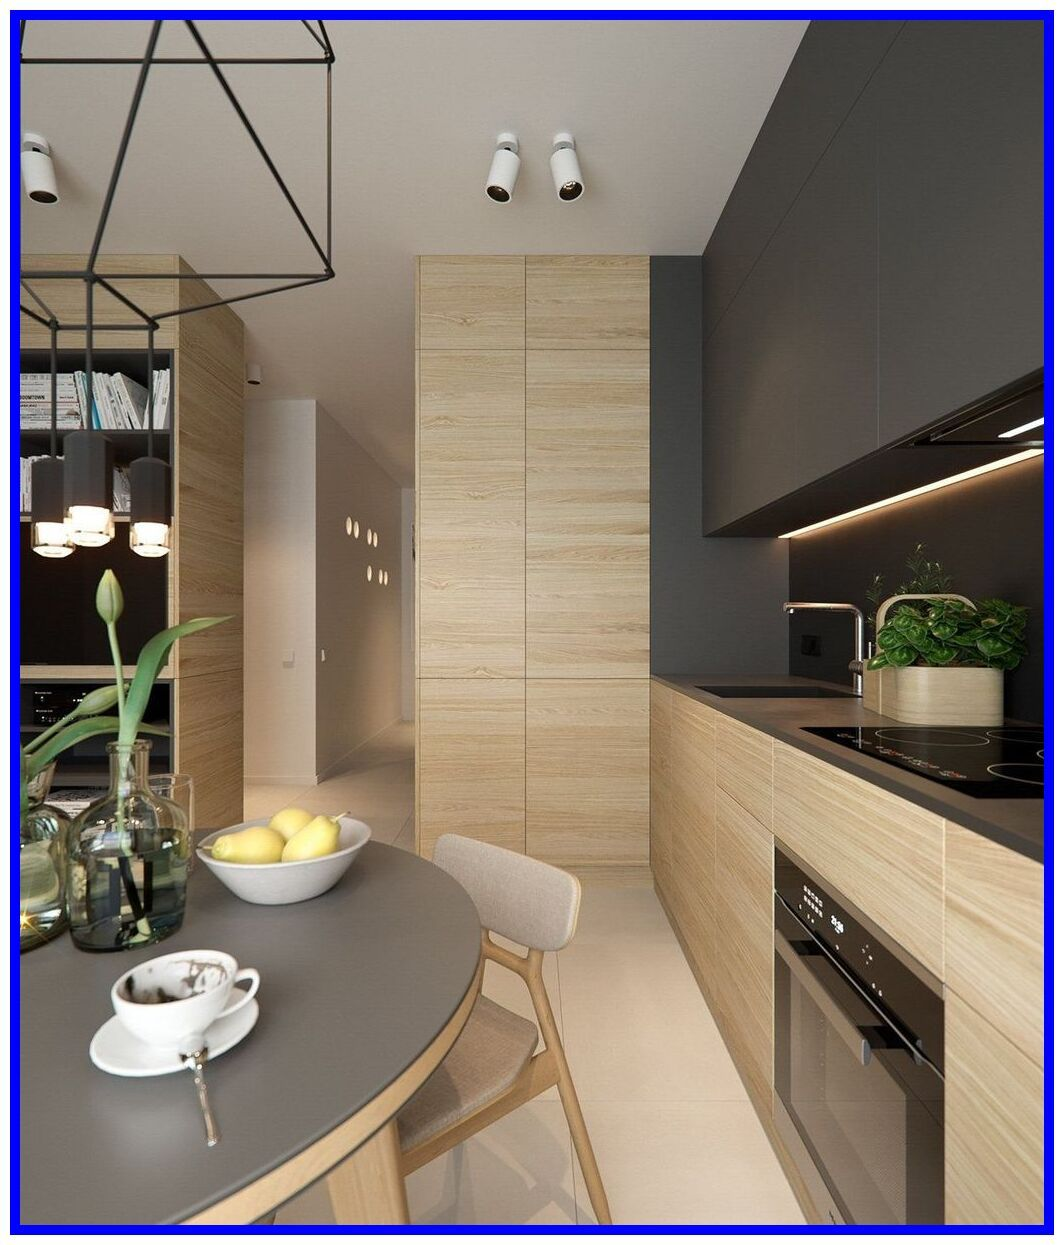 46 Reference Of Small Kitchen Interior Design Ideas In Indian Apartments In 2020 Small Apartment Kitchen Decor Kitchen Decor Apartment Interior Kitchen Small